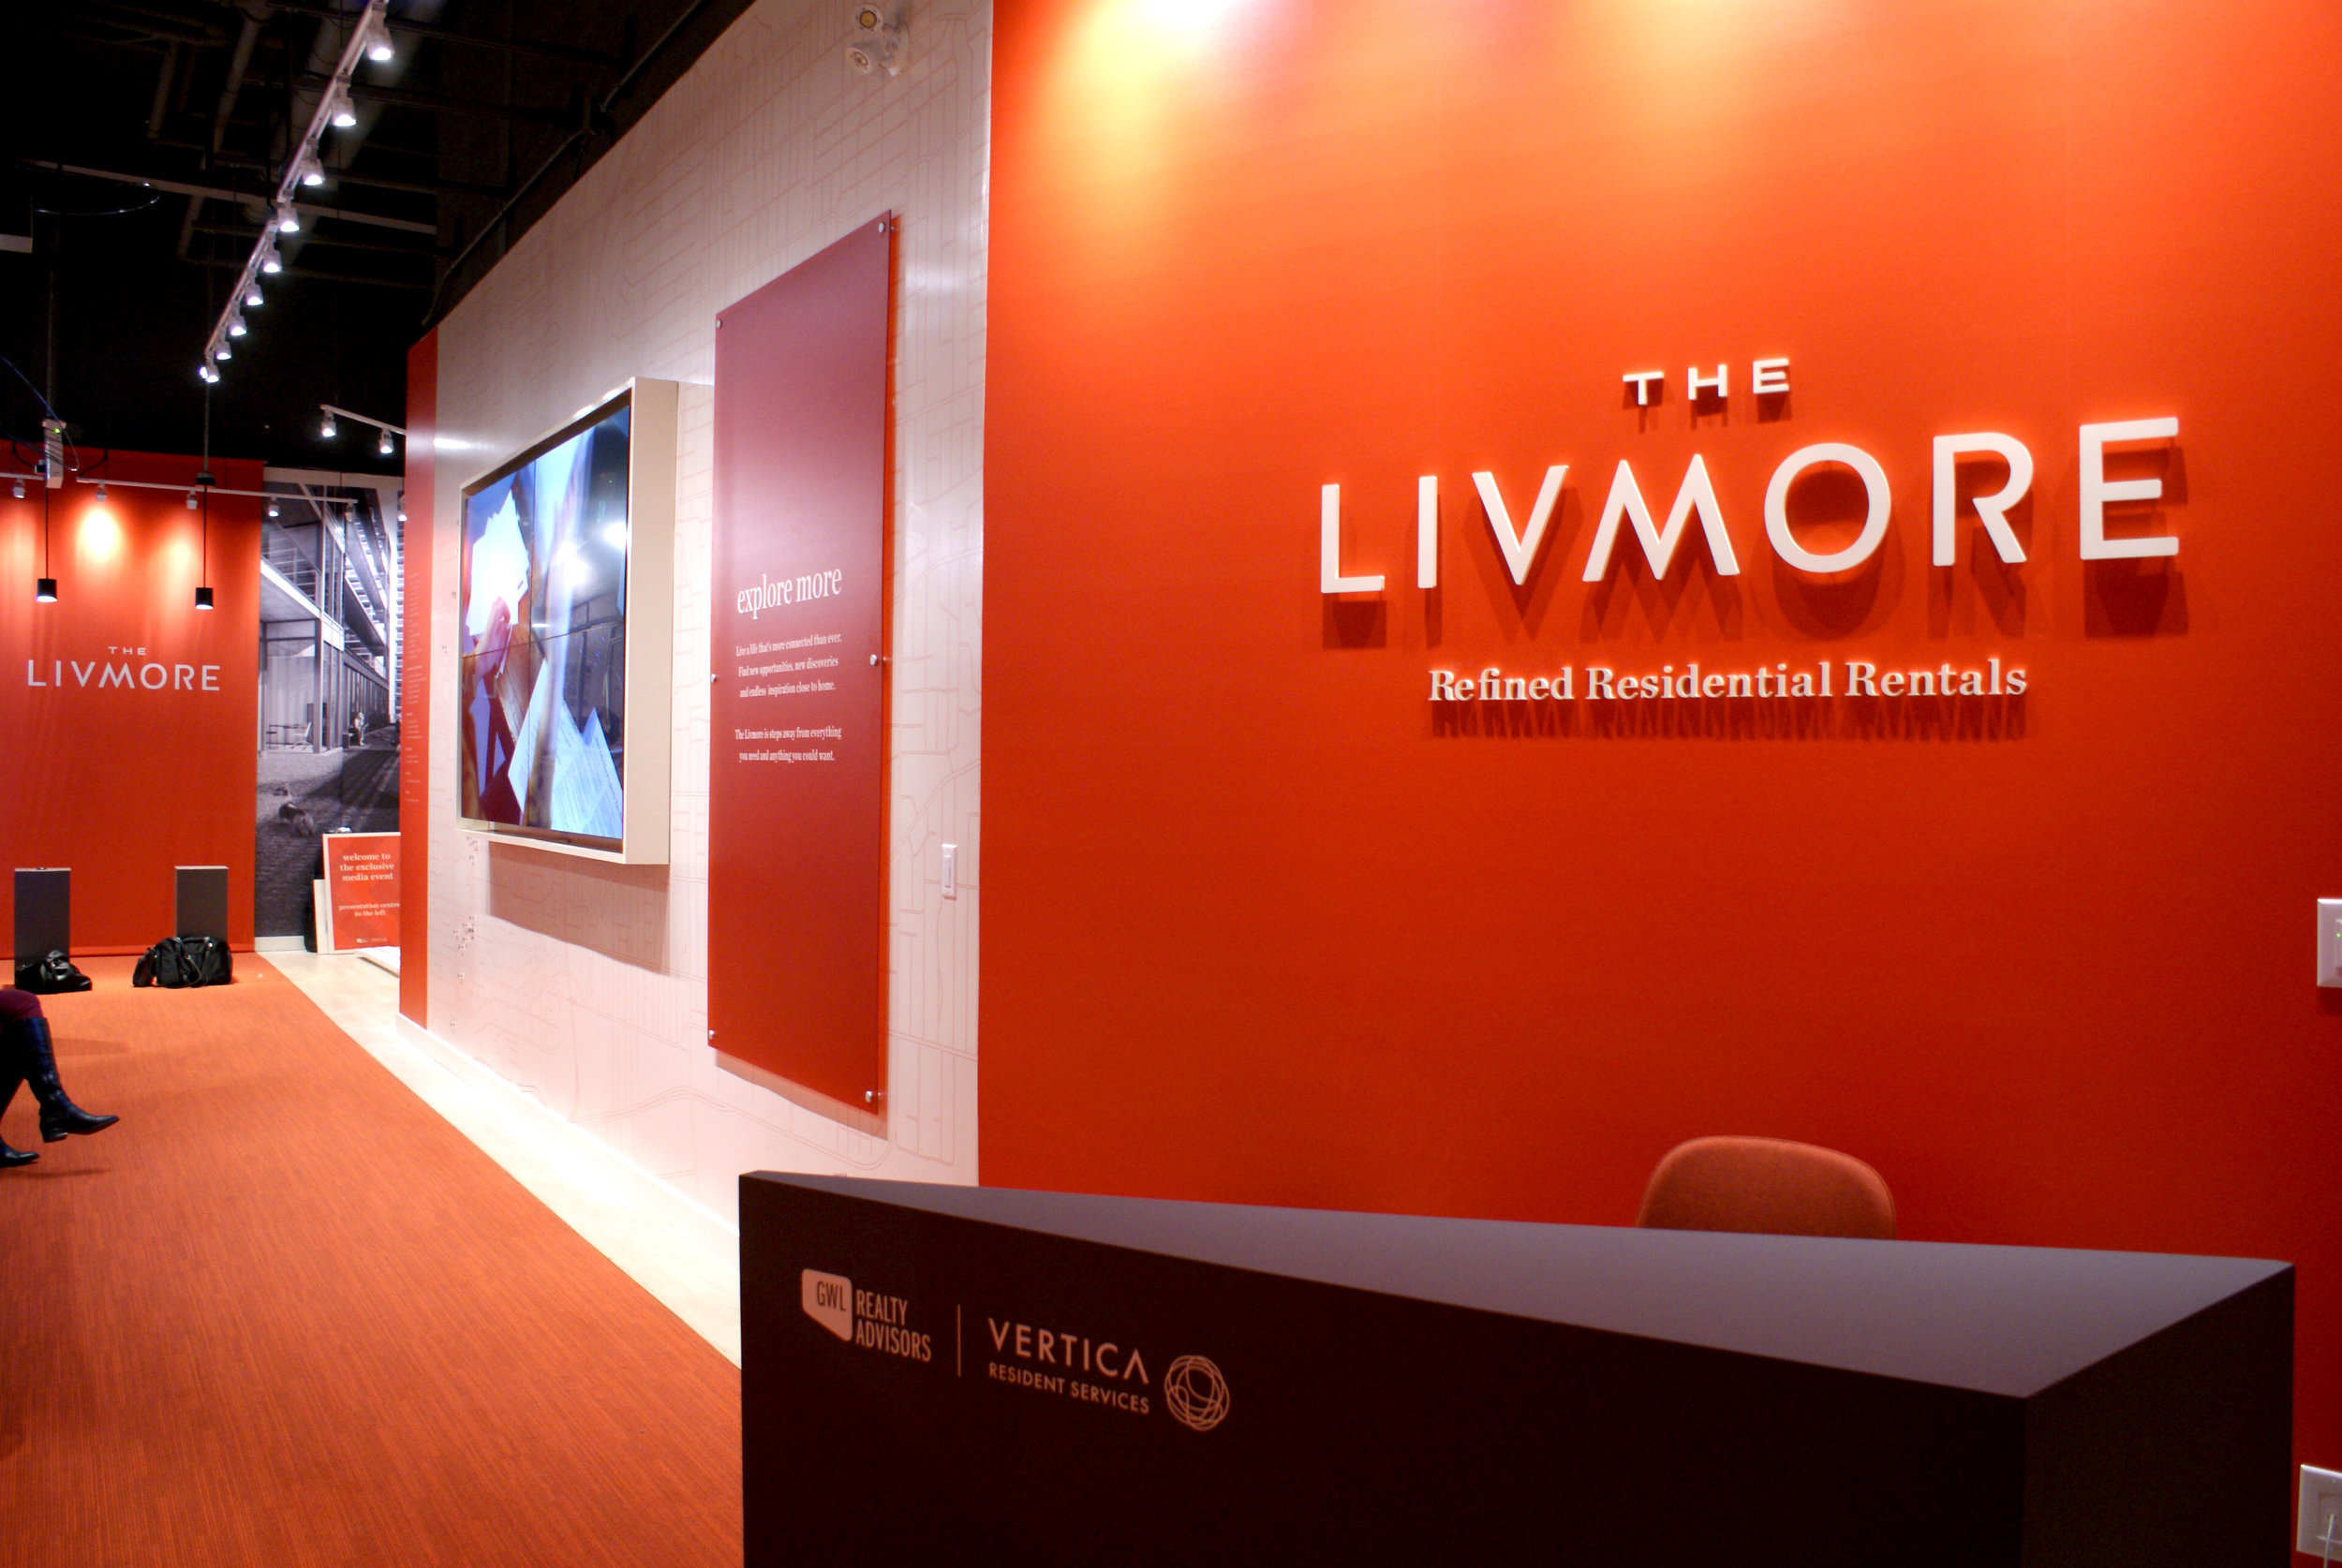 Livmore leasing centre, image by Dayna Voisin